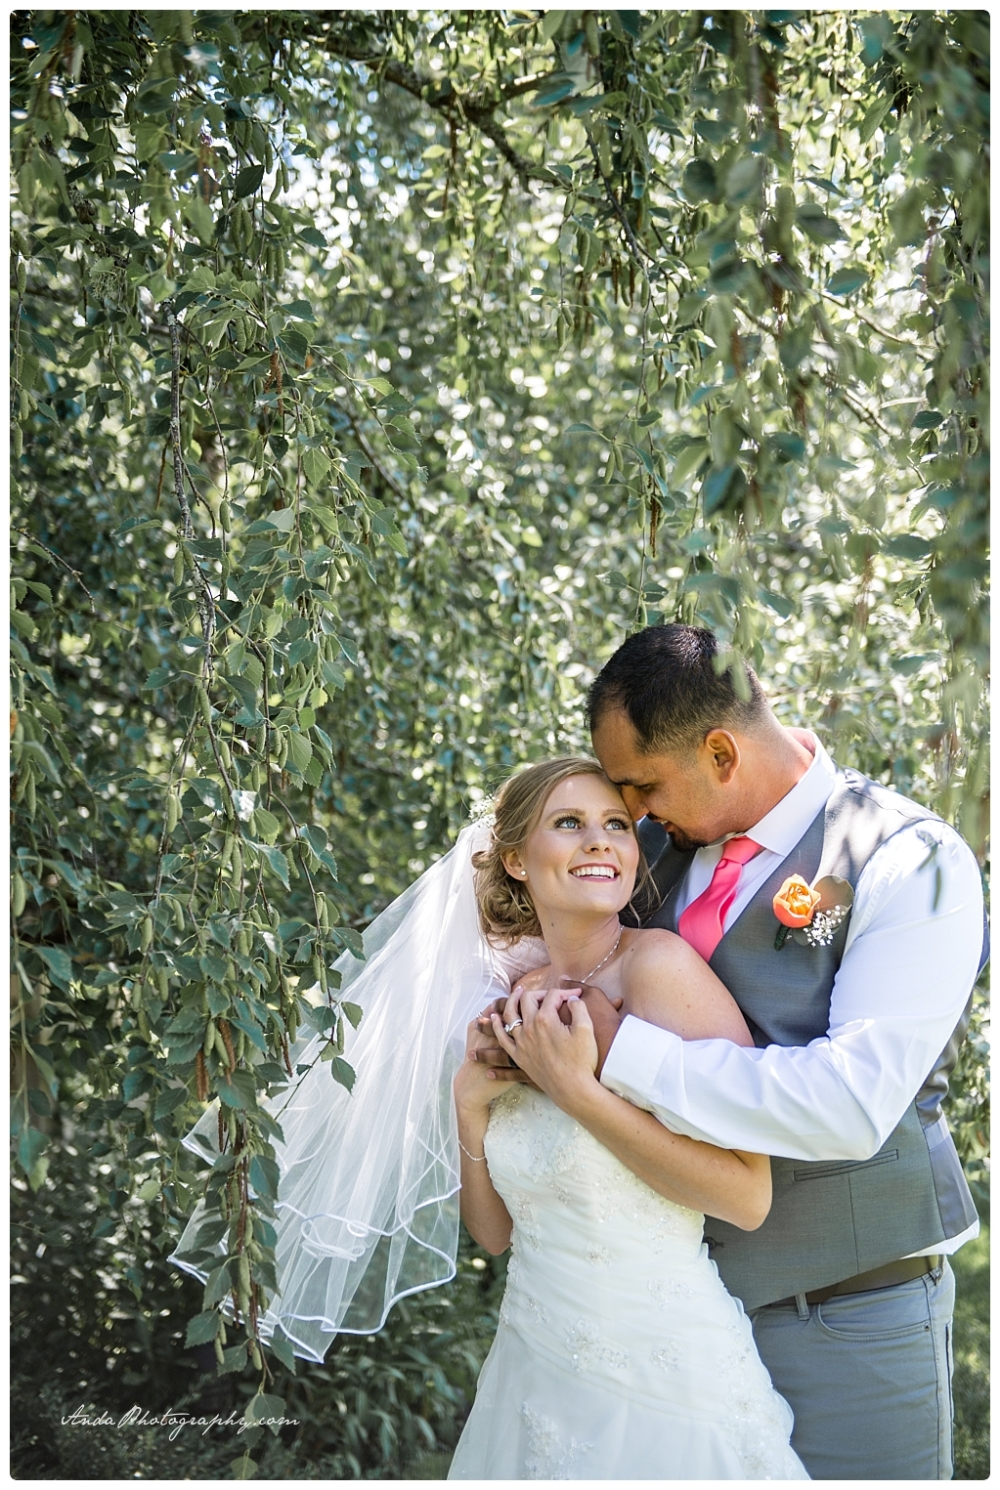 Anda Photography Bellingham wedding photographer seattle wedding photographer Hammer Ranch wedding_0060